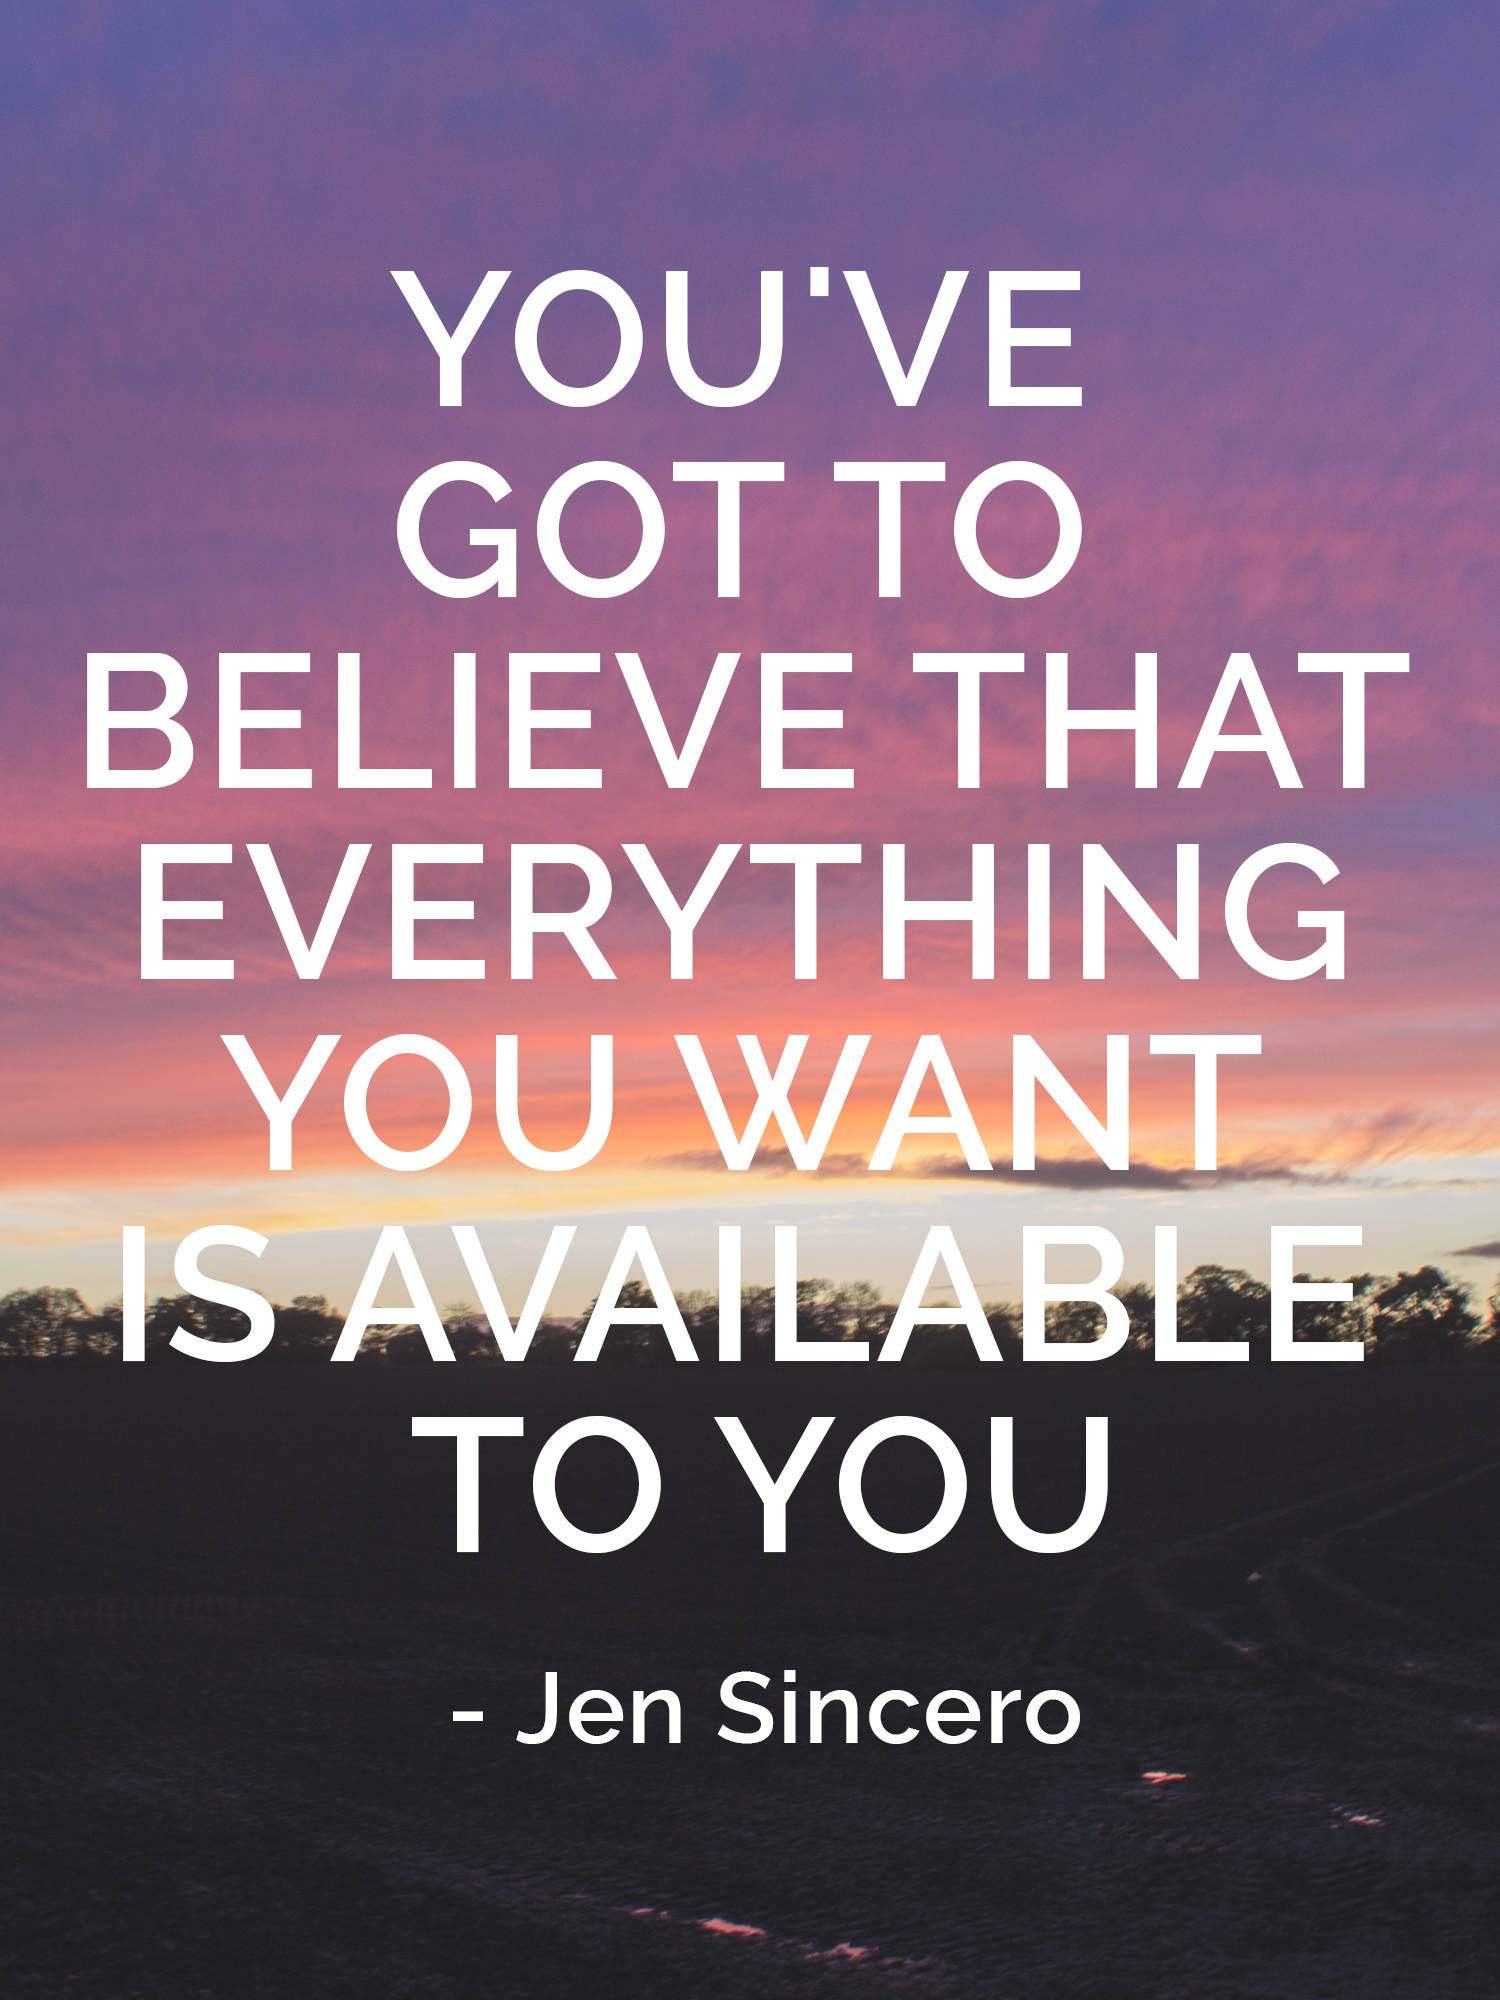 You've got to believe that everything you want is available to you Jen Sincero